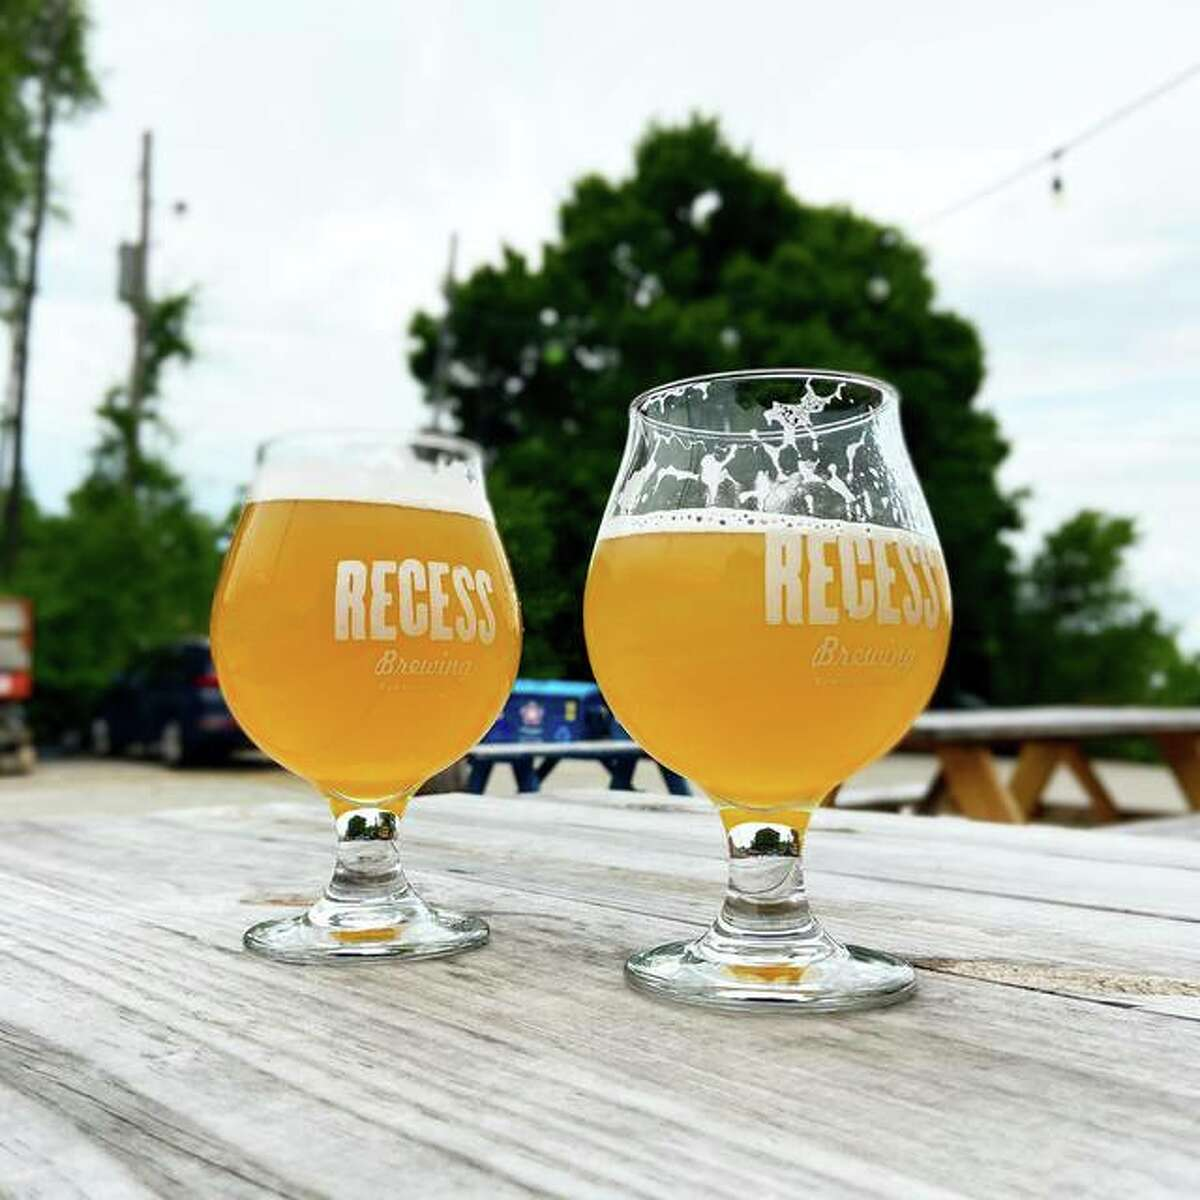 Illinois craft breweries, such as Recess Brewing in Edwardsville, will get new marketing privileges following action by the Illinois legislature. There are nearly 300 craft breweries in Illinois. A bill awaiting Gov. J.B. Pritzker's signature will let craft breweries produce up to 5,000 barrels annually and self-distribute up to 200 barrels.